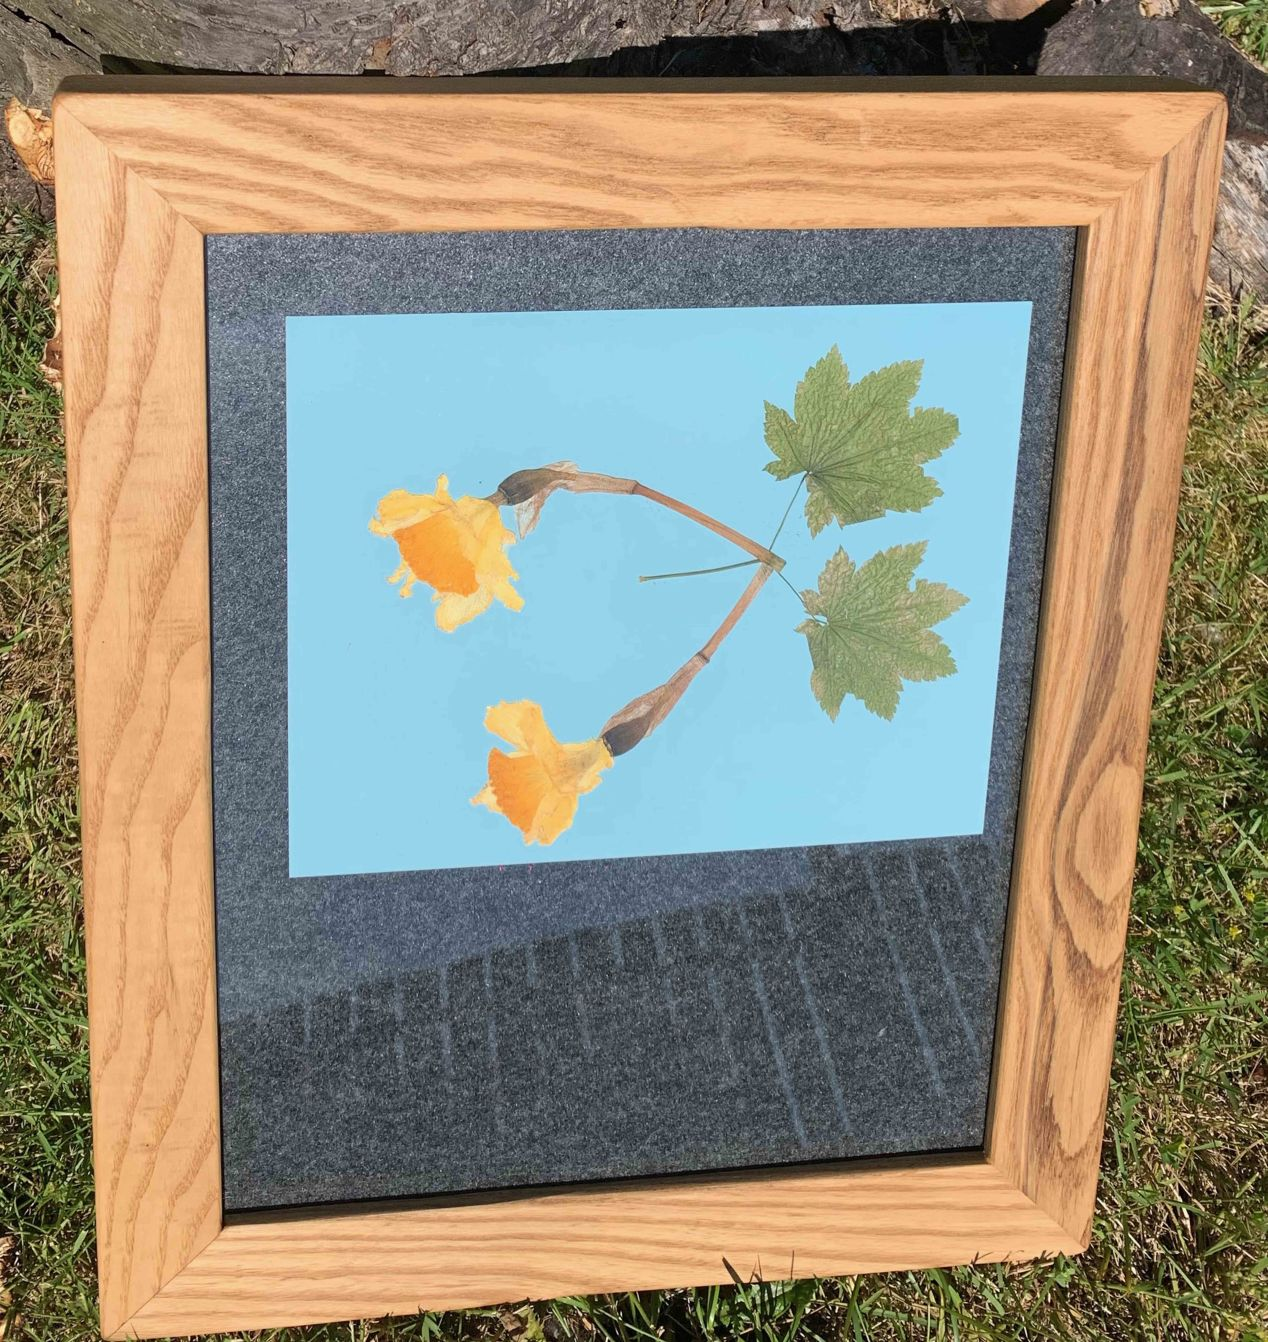 Assembled picture frame with photo paper facing the garden flowers being exposed to direct sunlight.